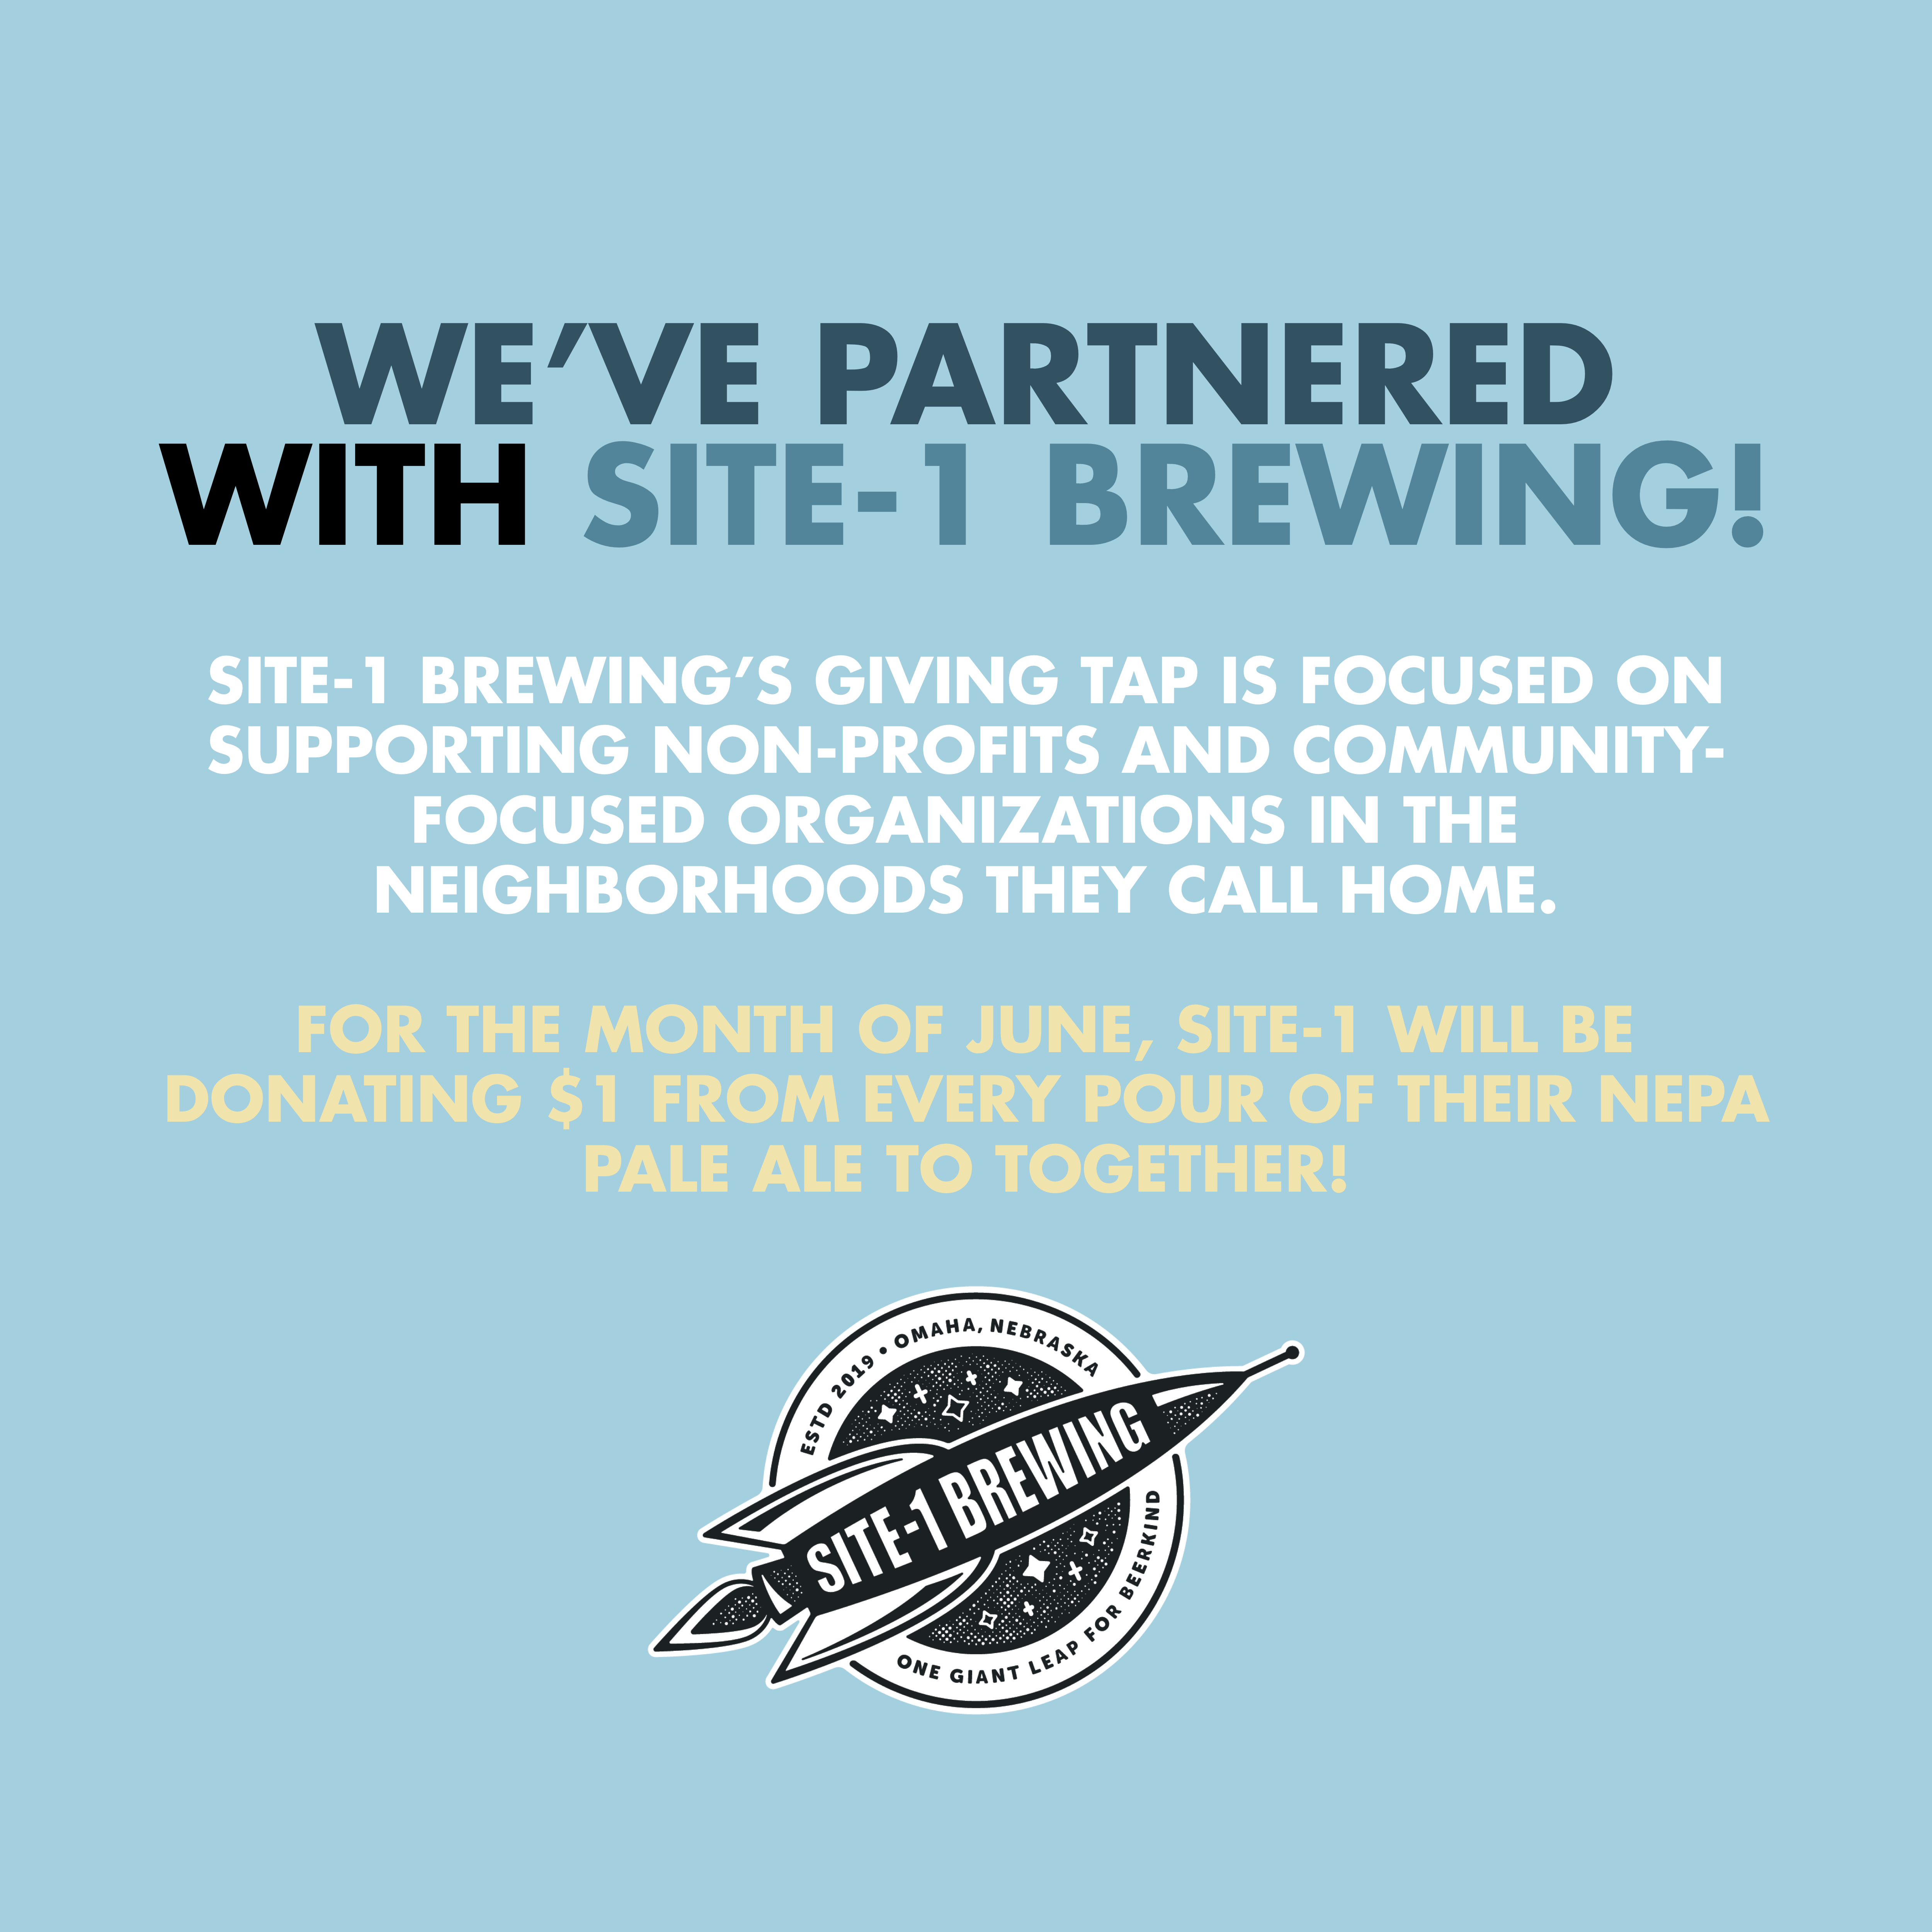 We've partnered with Site-1 Brewing Company